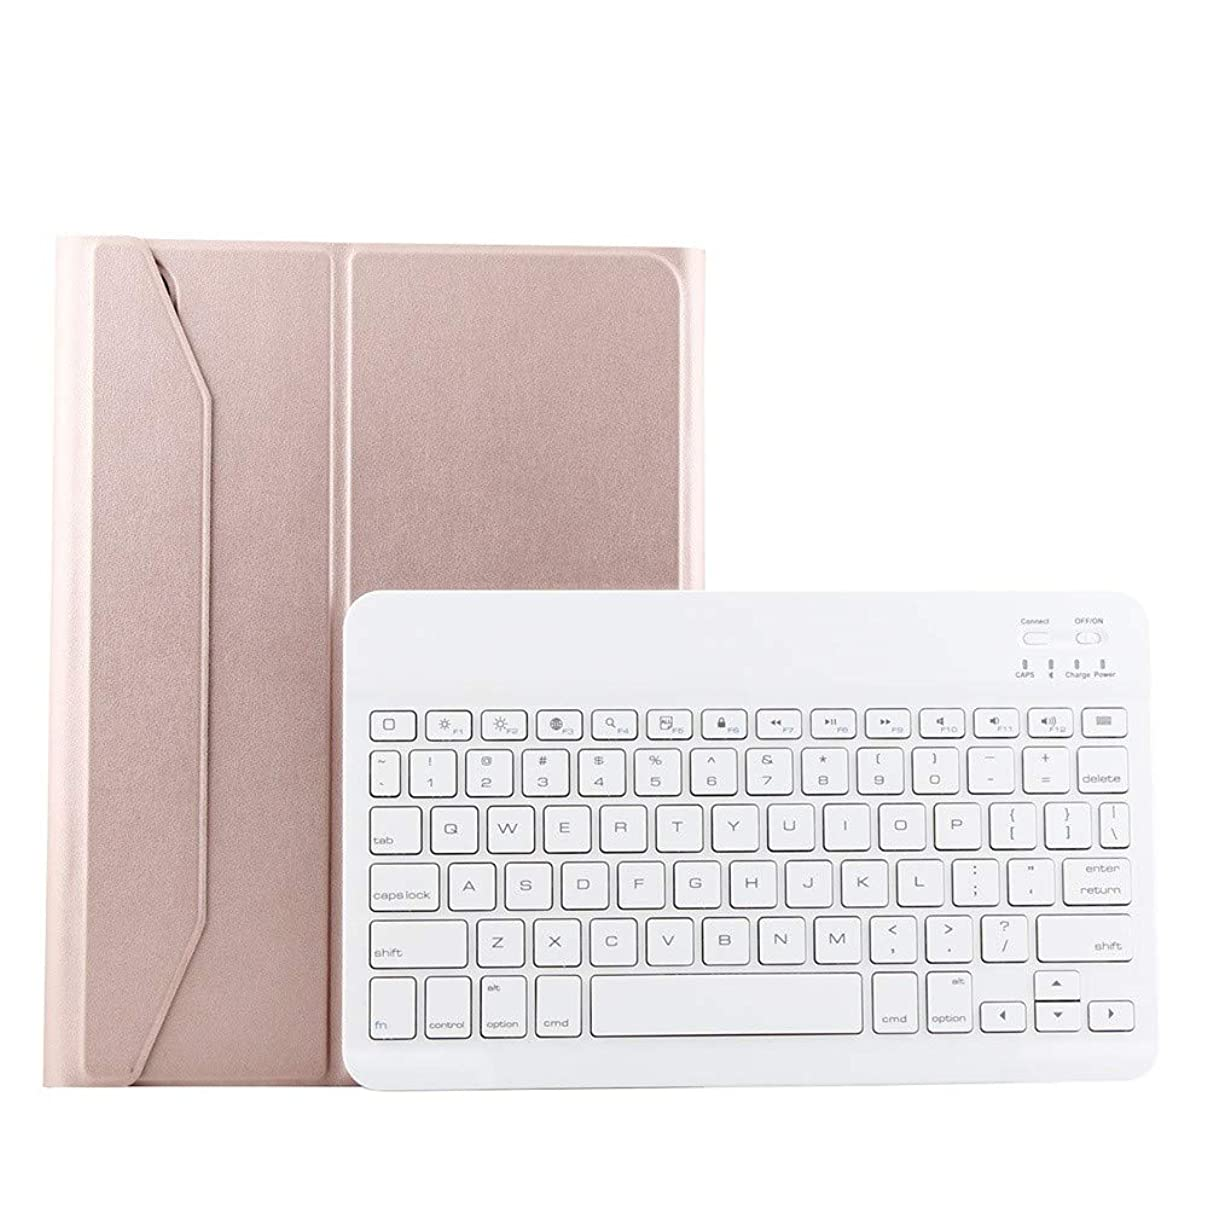 Amaping Leather Stand Case Cover+Detachable Wireless Bluetooth Keyboard for iPad Pro 11 inch 2018 (Rose Gold) et78398943405